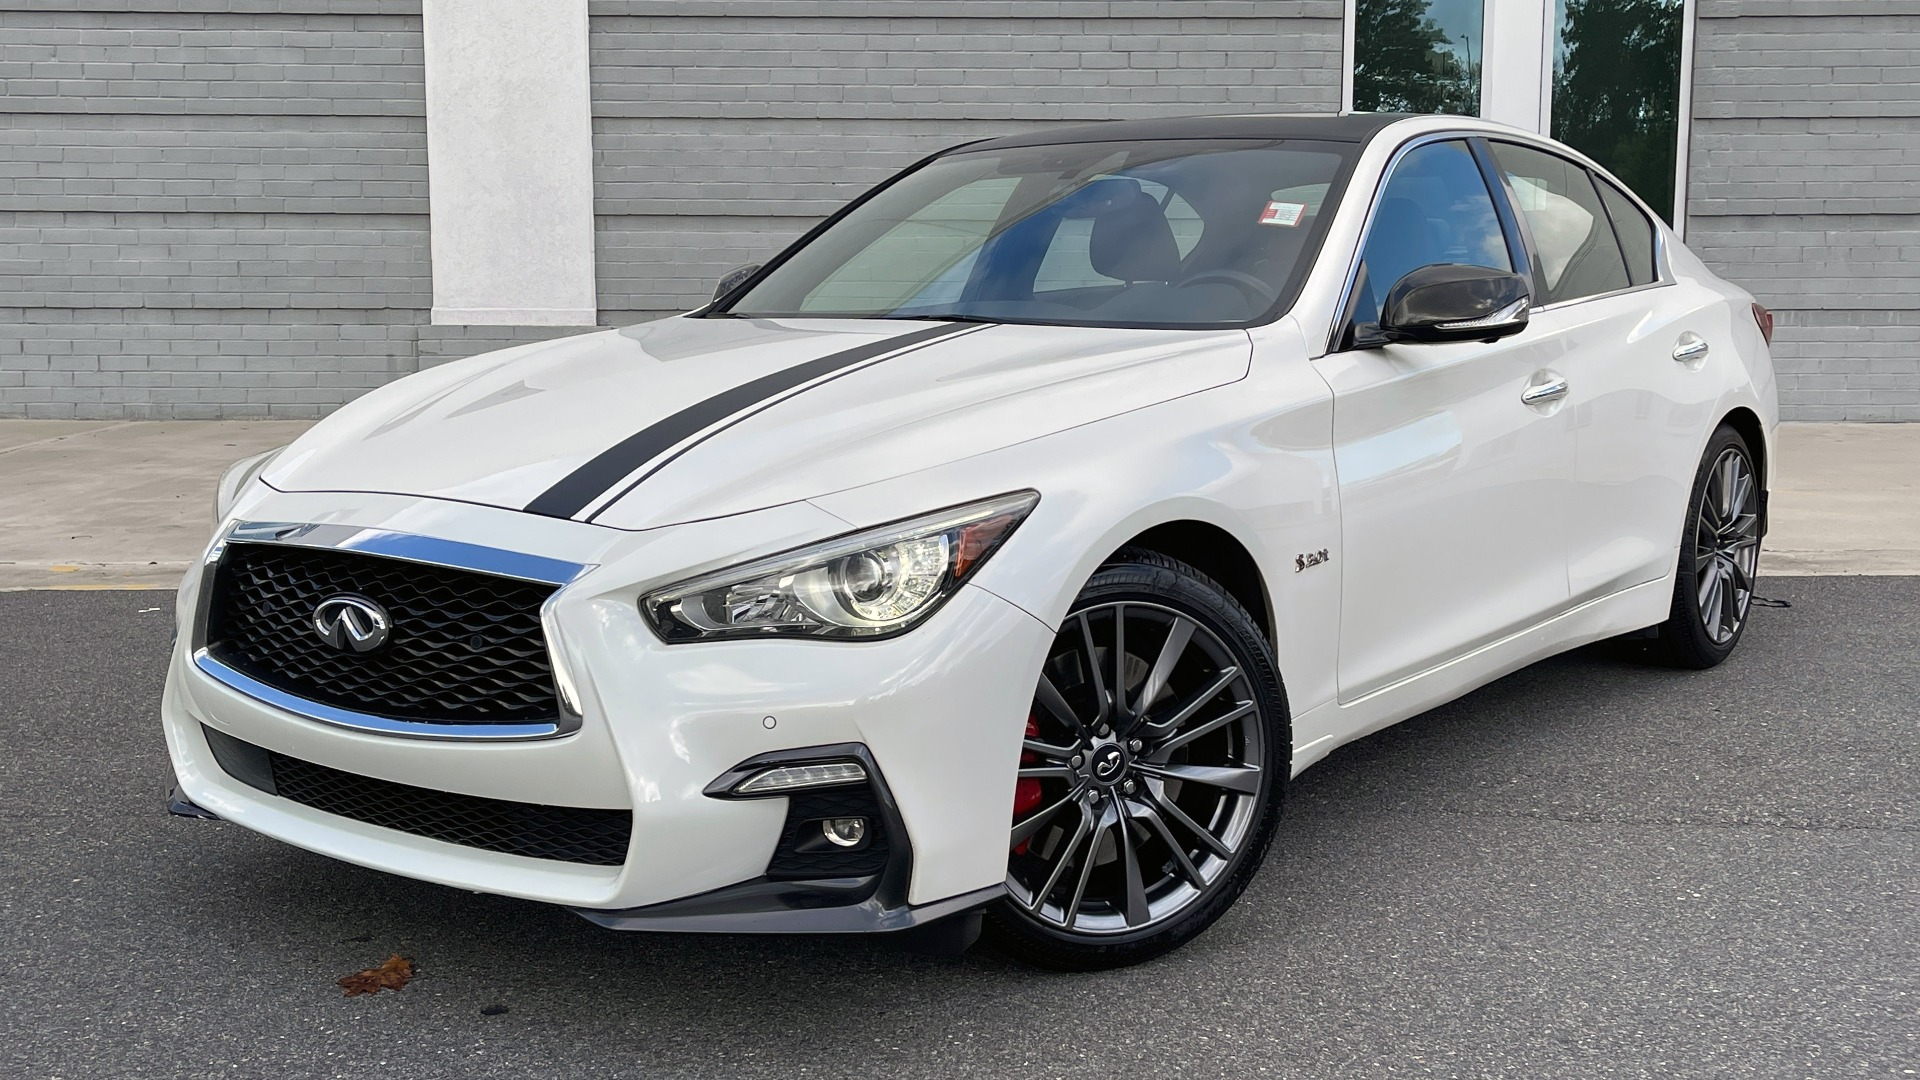 Used 2018 INFINITI Q50 RED SPORT 400 / AWD / PROACTIVE PKG / CF PKG / AW PKG / WELCOME LIGHTING for sale $32,995 at Formula Imports in Charlotte NC 28227 1